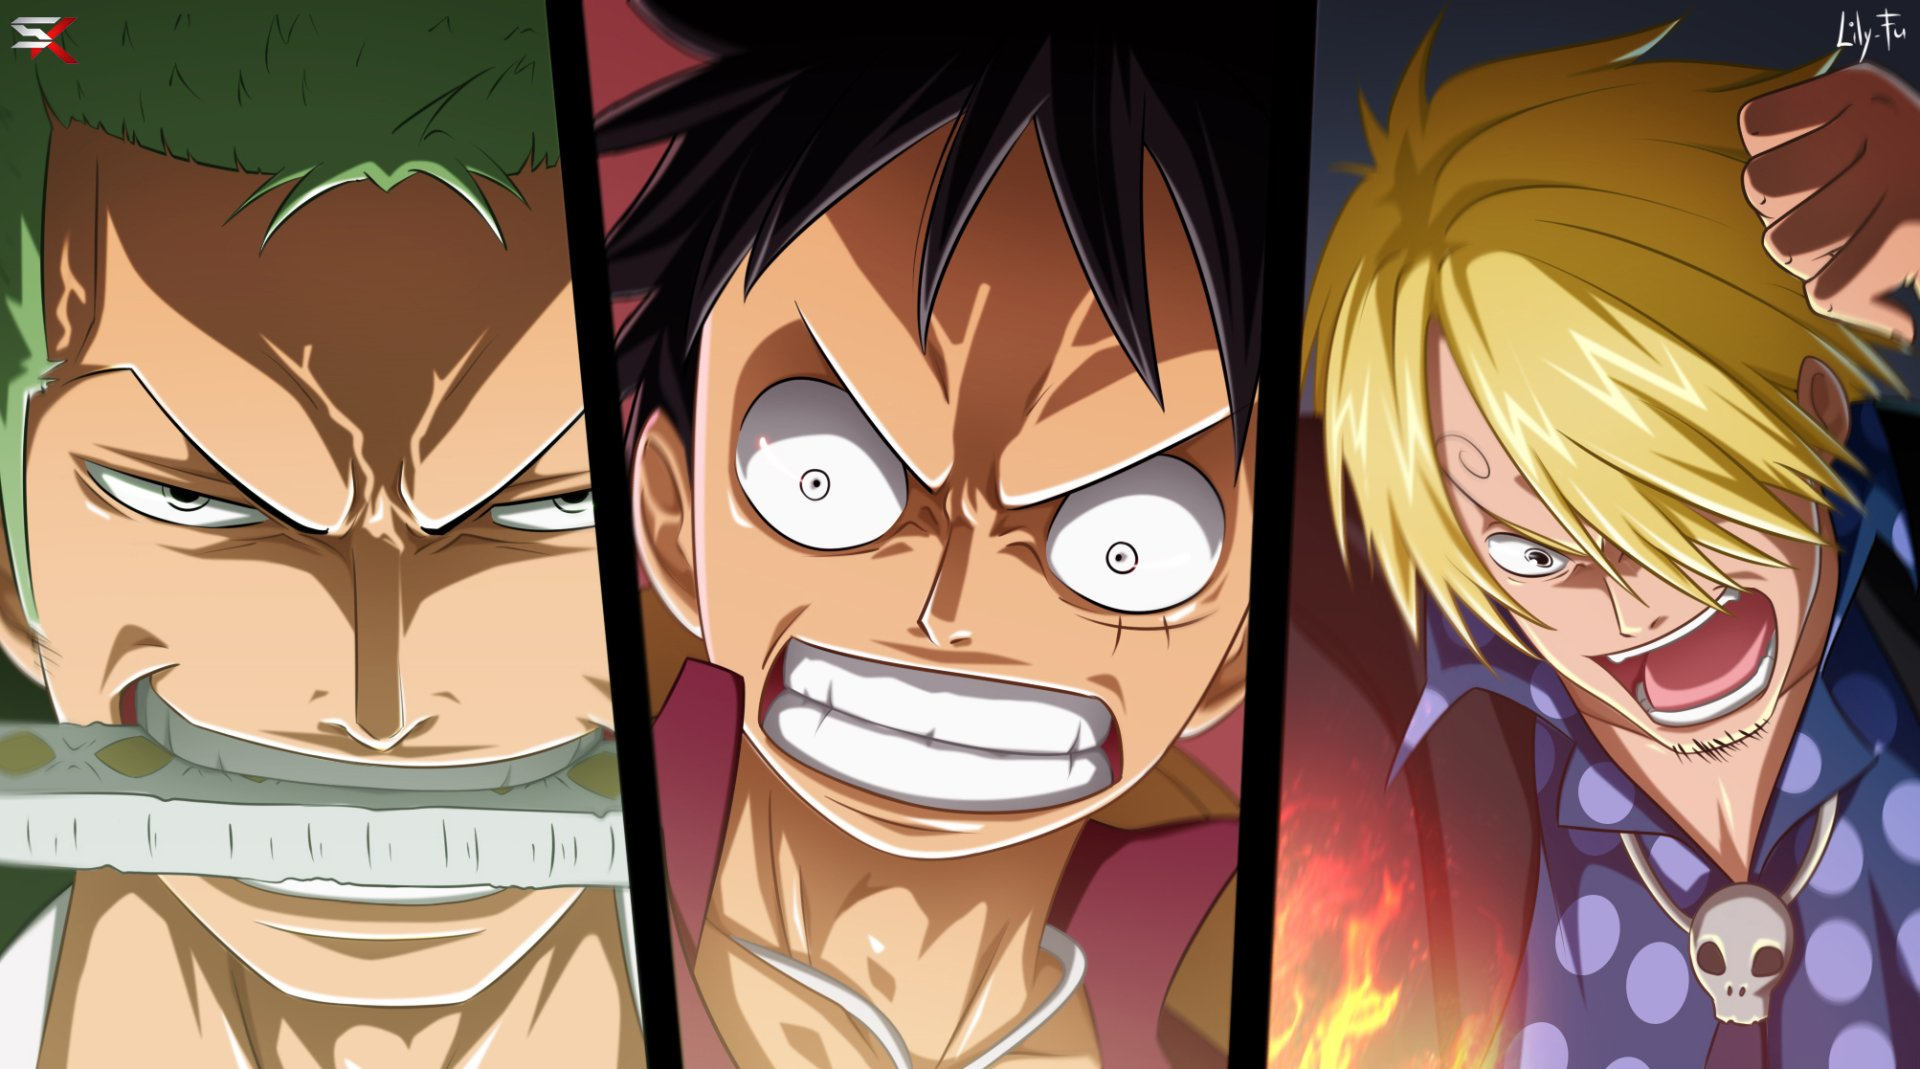 Anime - One Piece  Monkey D. Luffy Sanji (One Piece) Zoro Roronoa Wallpaper